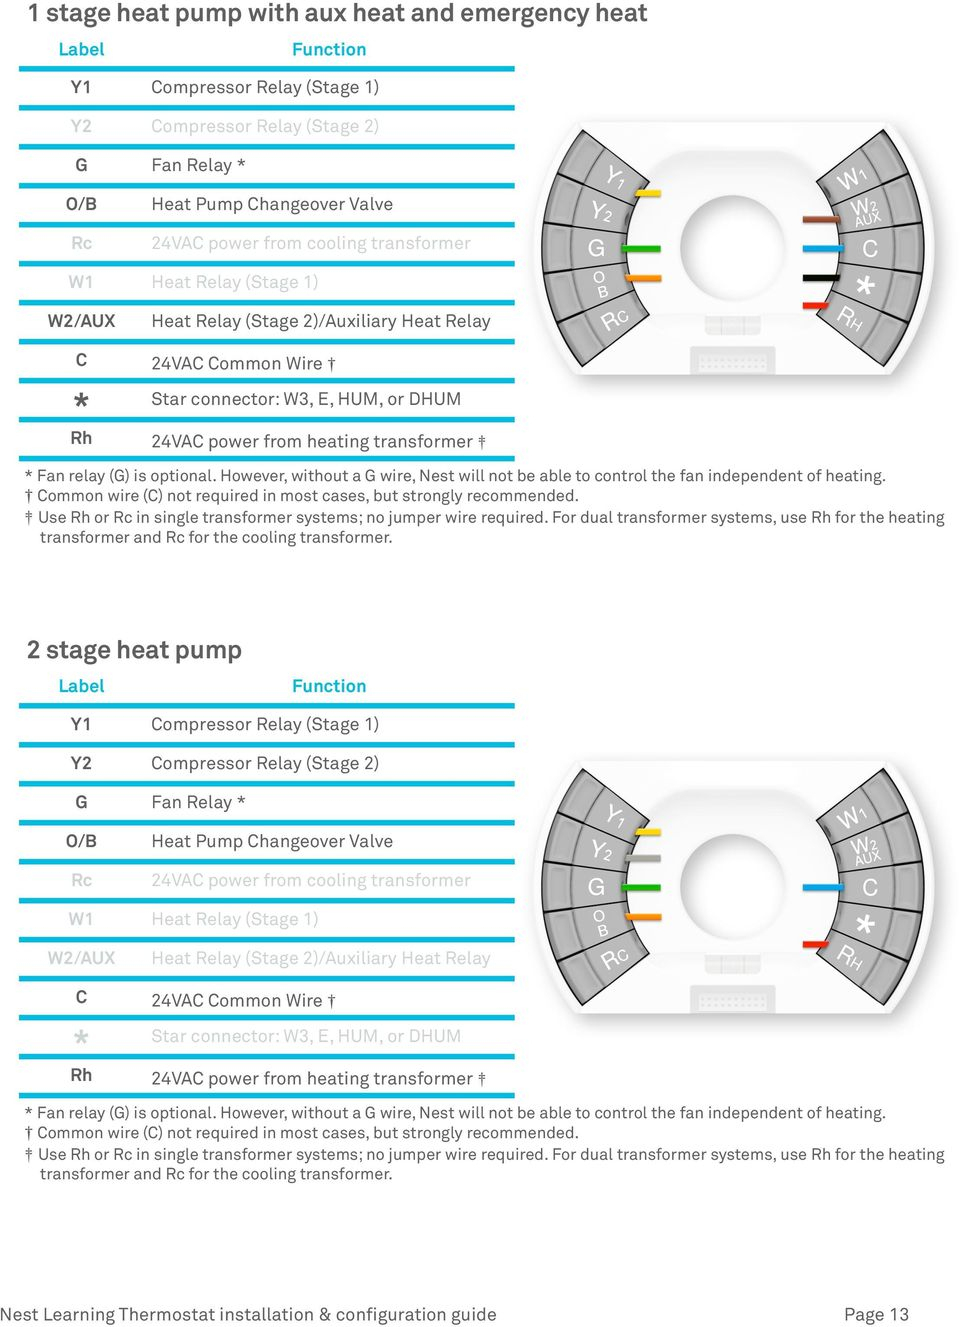 Nest Thermostat Wiring Diagram For Heat Pump | Wiring Diagram - Nest Gen 2 Wiring Diagram